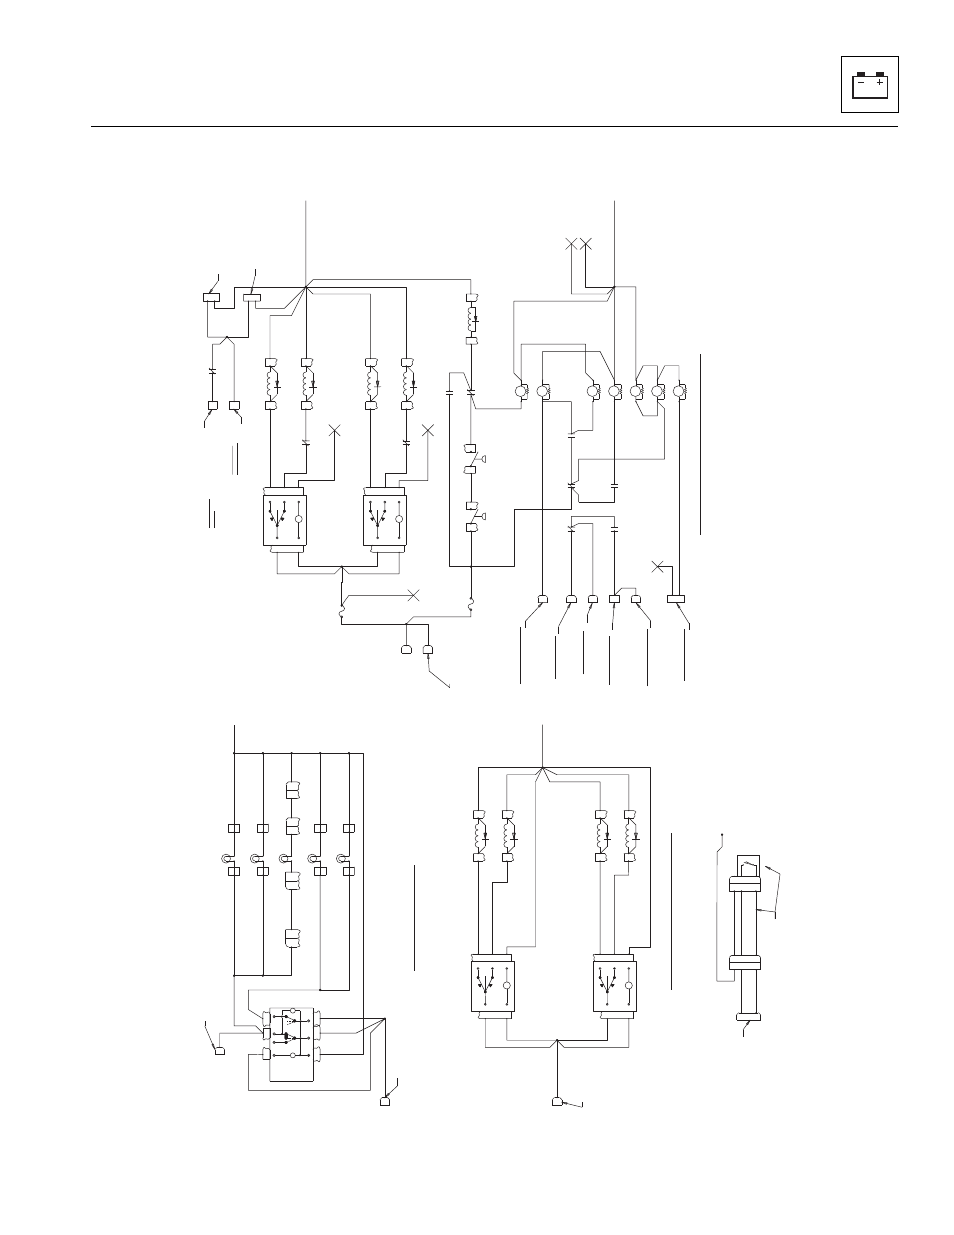 skytrak 8042 wiring diagram